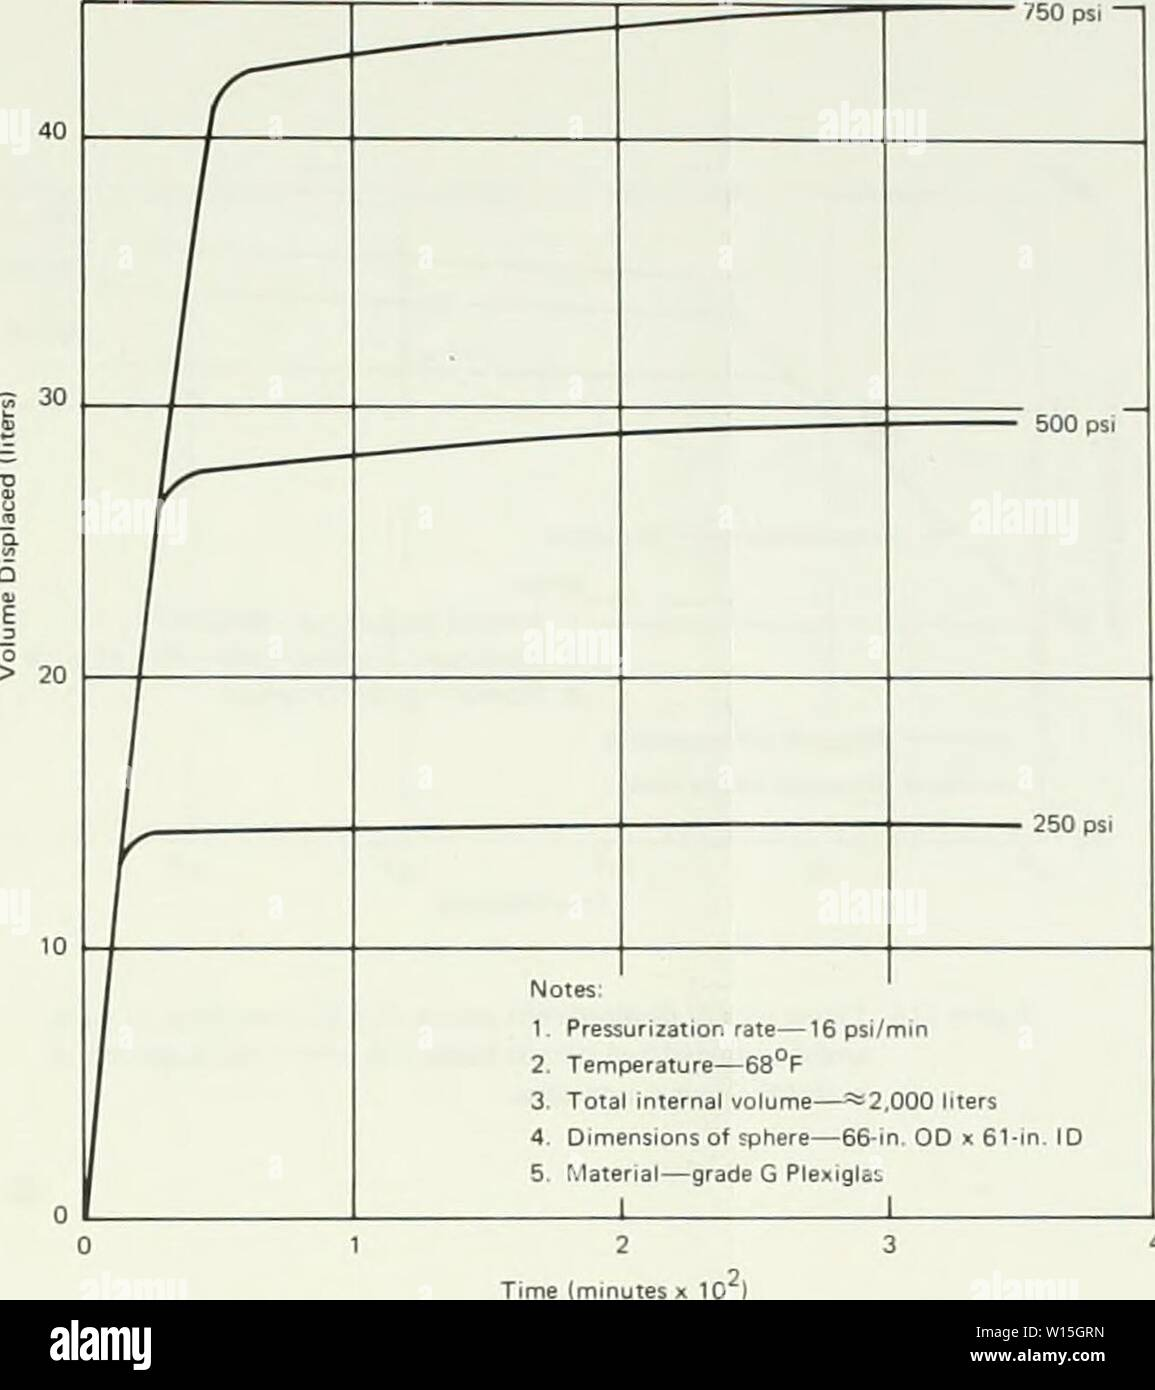 Archive image from page 150 of Development of a spherical